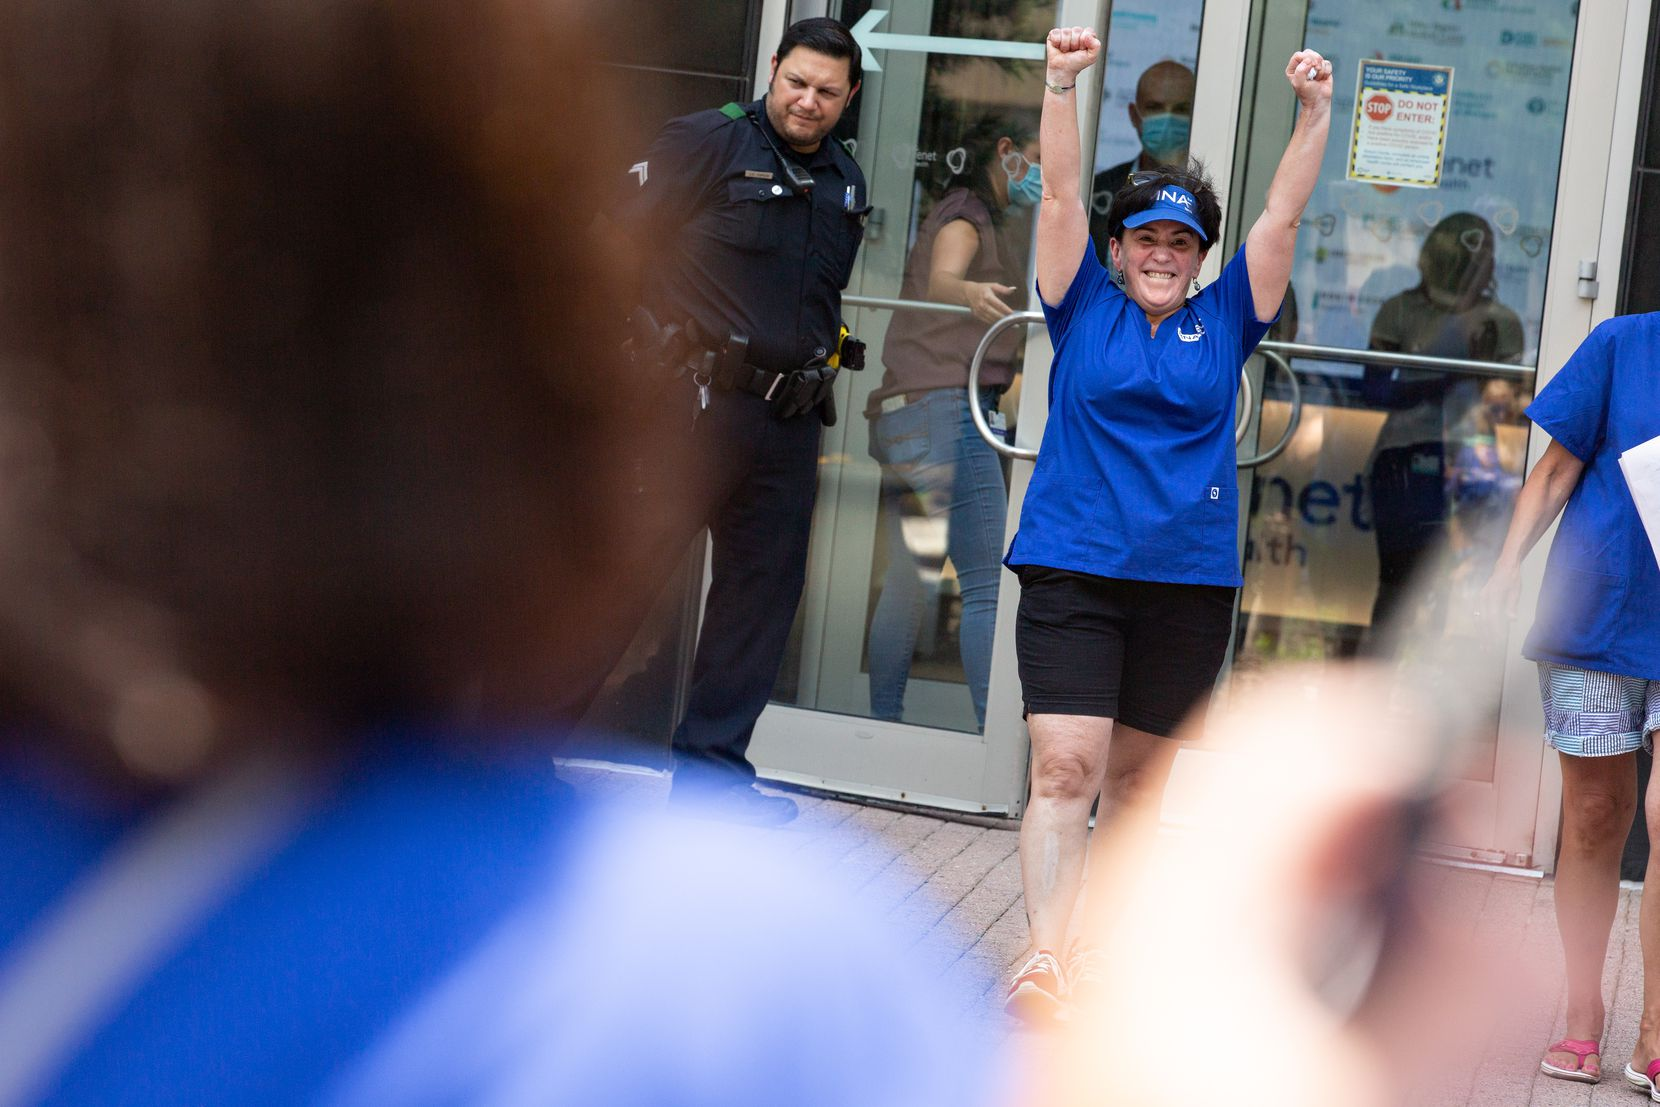 Striking nurse Marie Ritacco celebrates after delivering a petition signed by 700 nurses to Tenet Healthcare's corporate office.